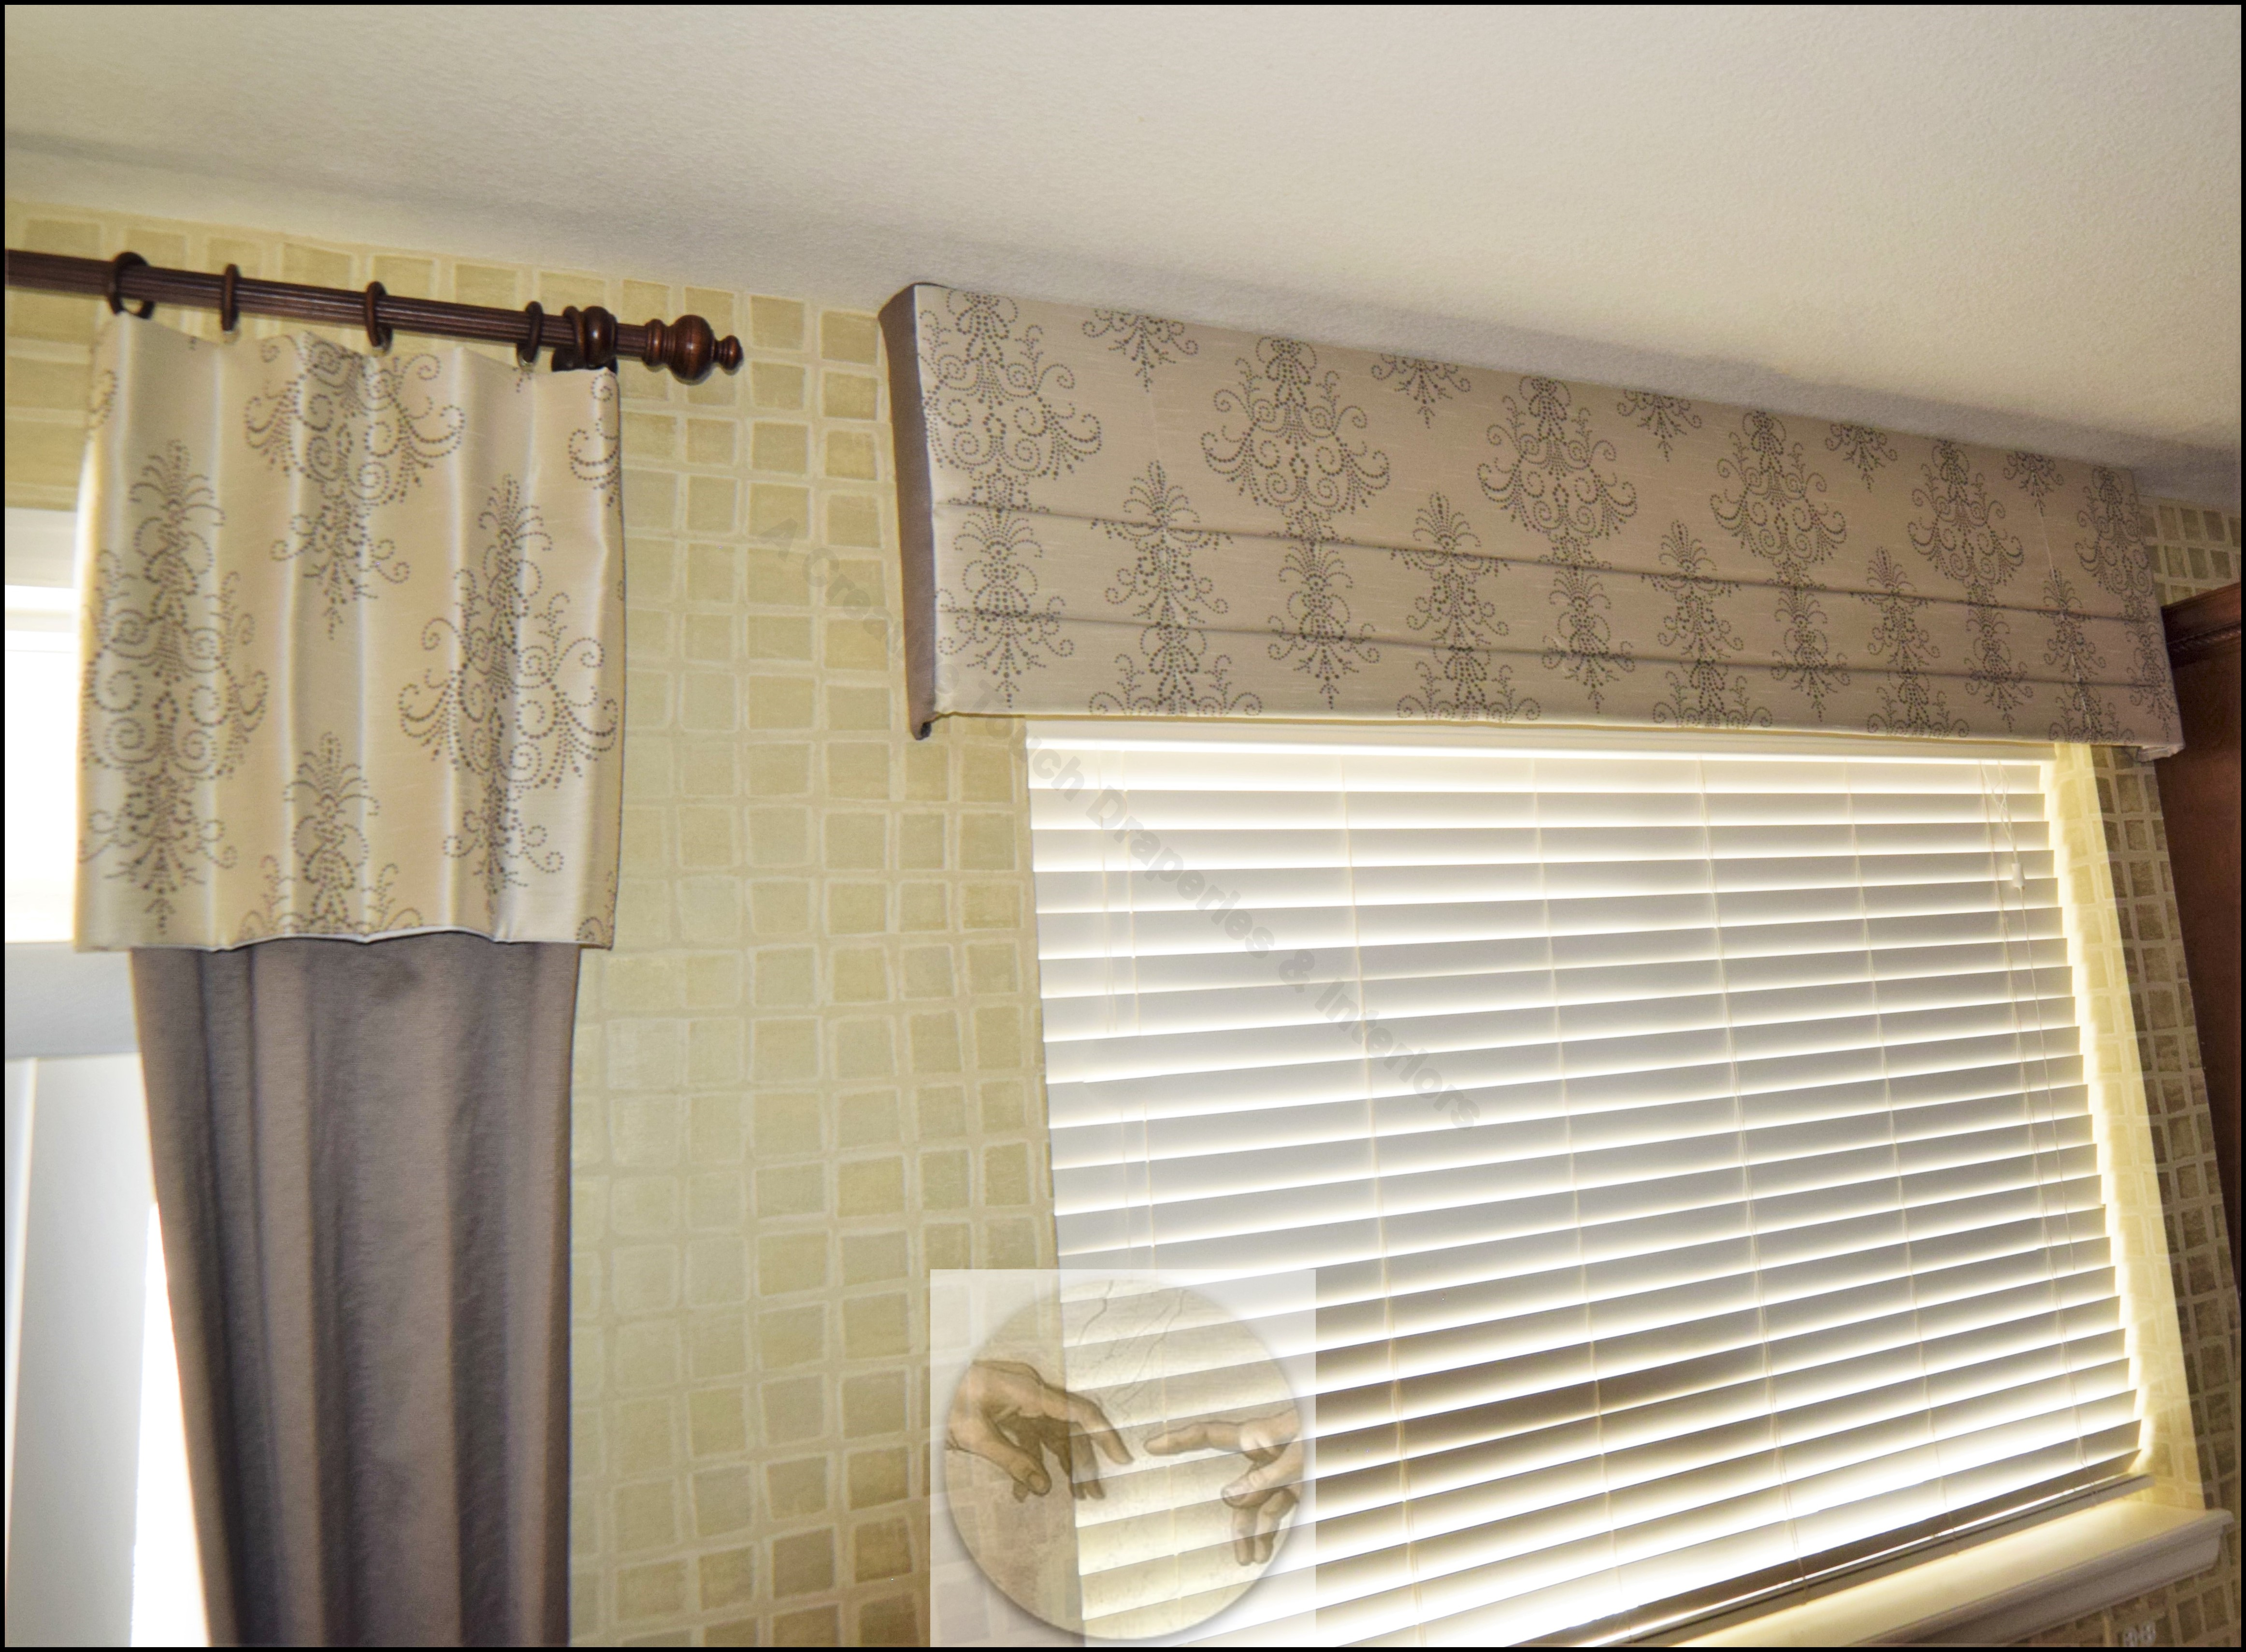 Mock Roman Valance over faux wood blinds